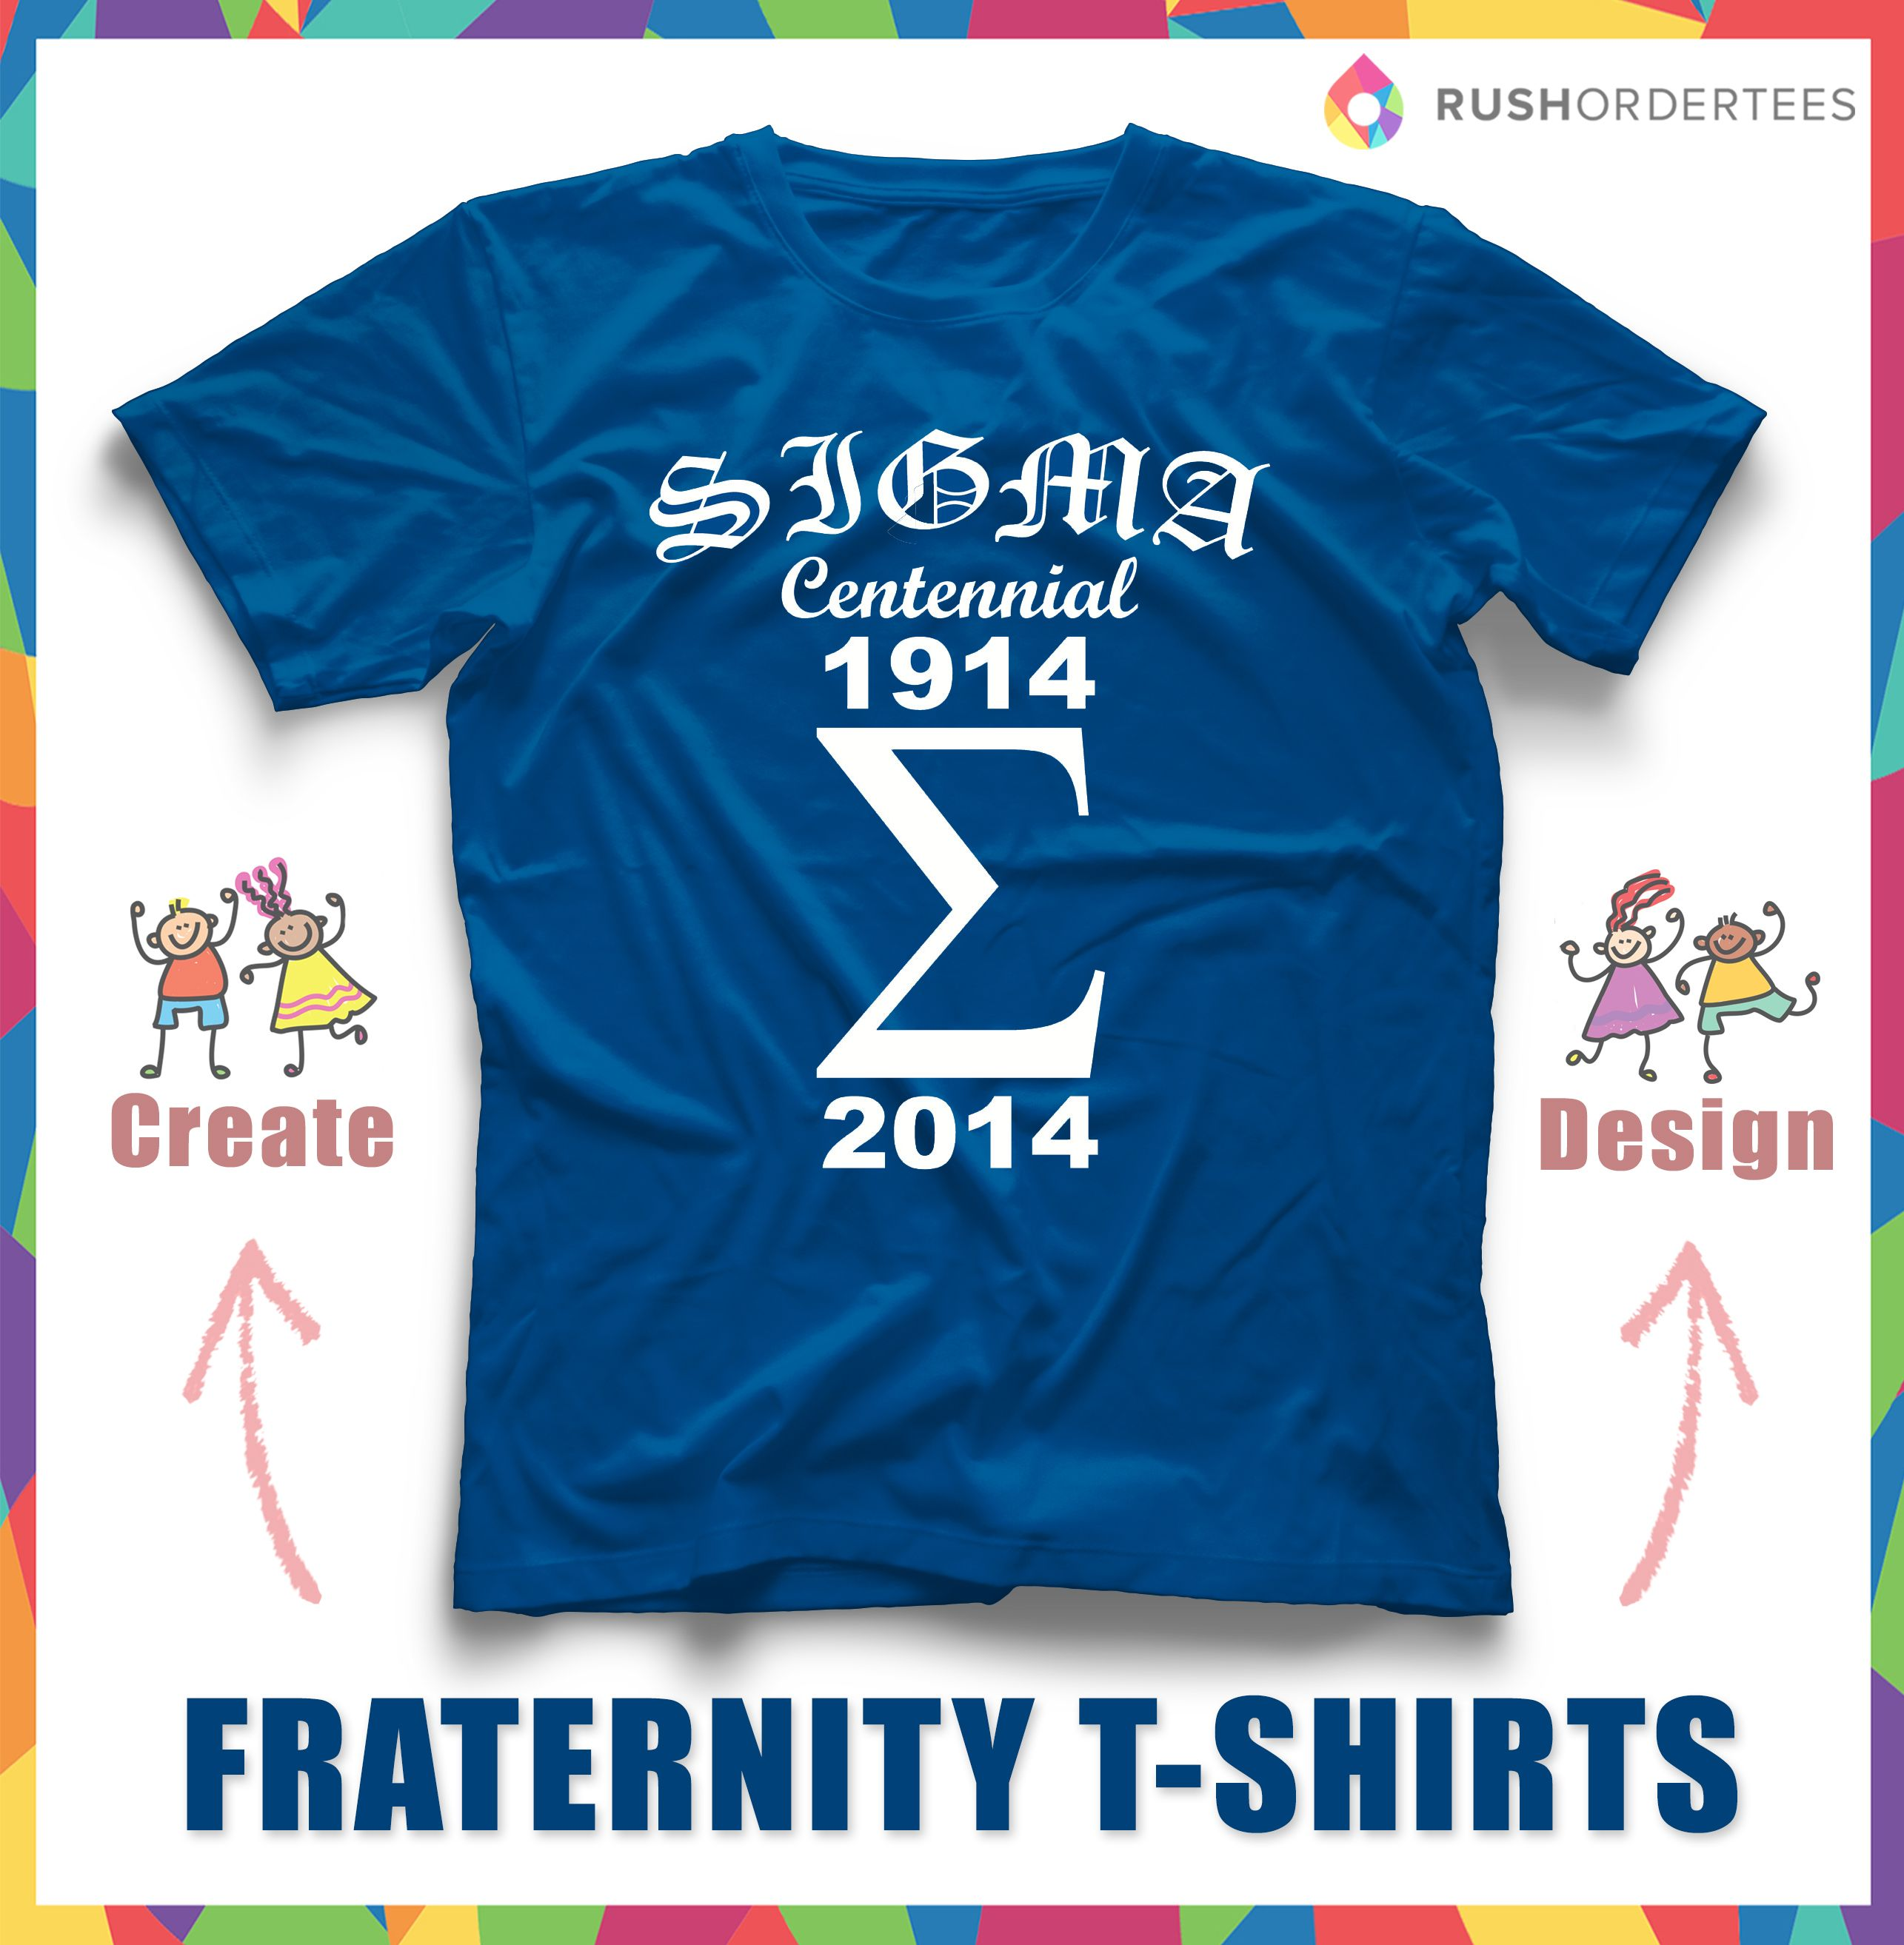 59d46d26e0b Design custom fraternity shirts easily! Create your frat design ...